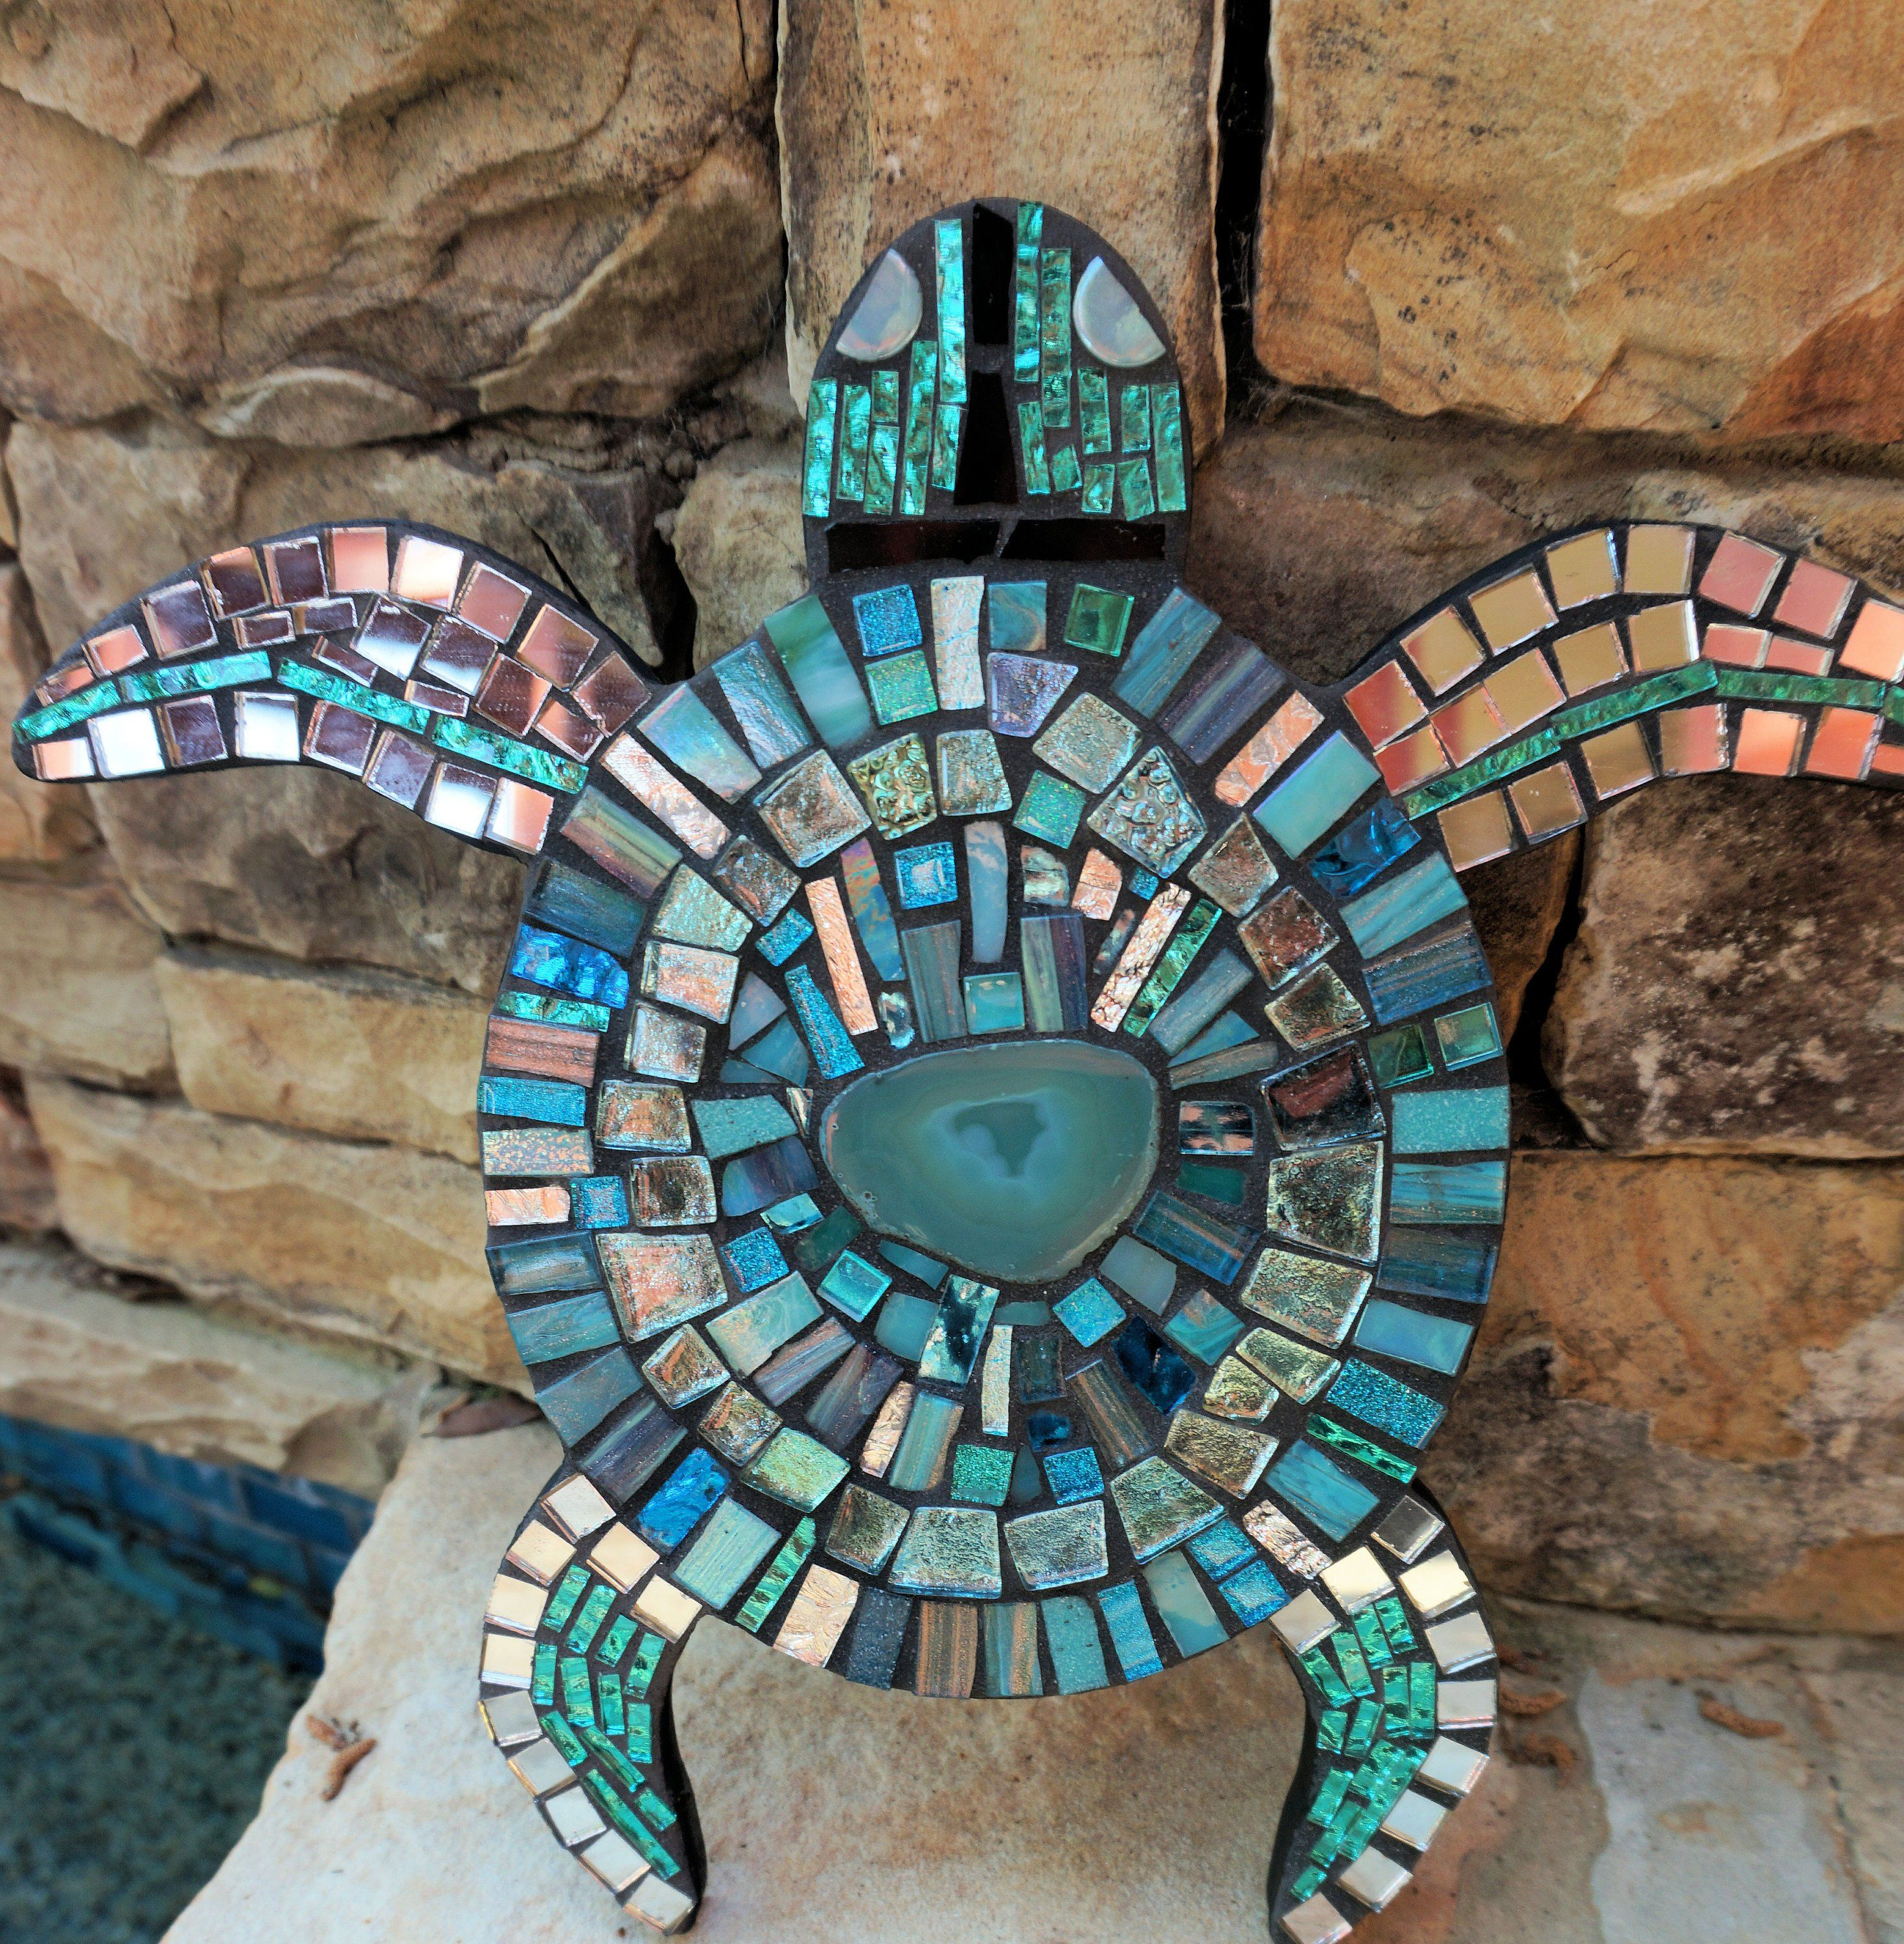 Mosaic Turtle Wall hanging logger head Sea art BLUE stained glass decor  mirrored ceramic agate tile CUSTOM Made to Order